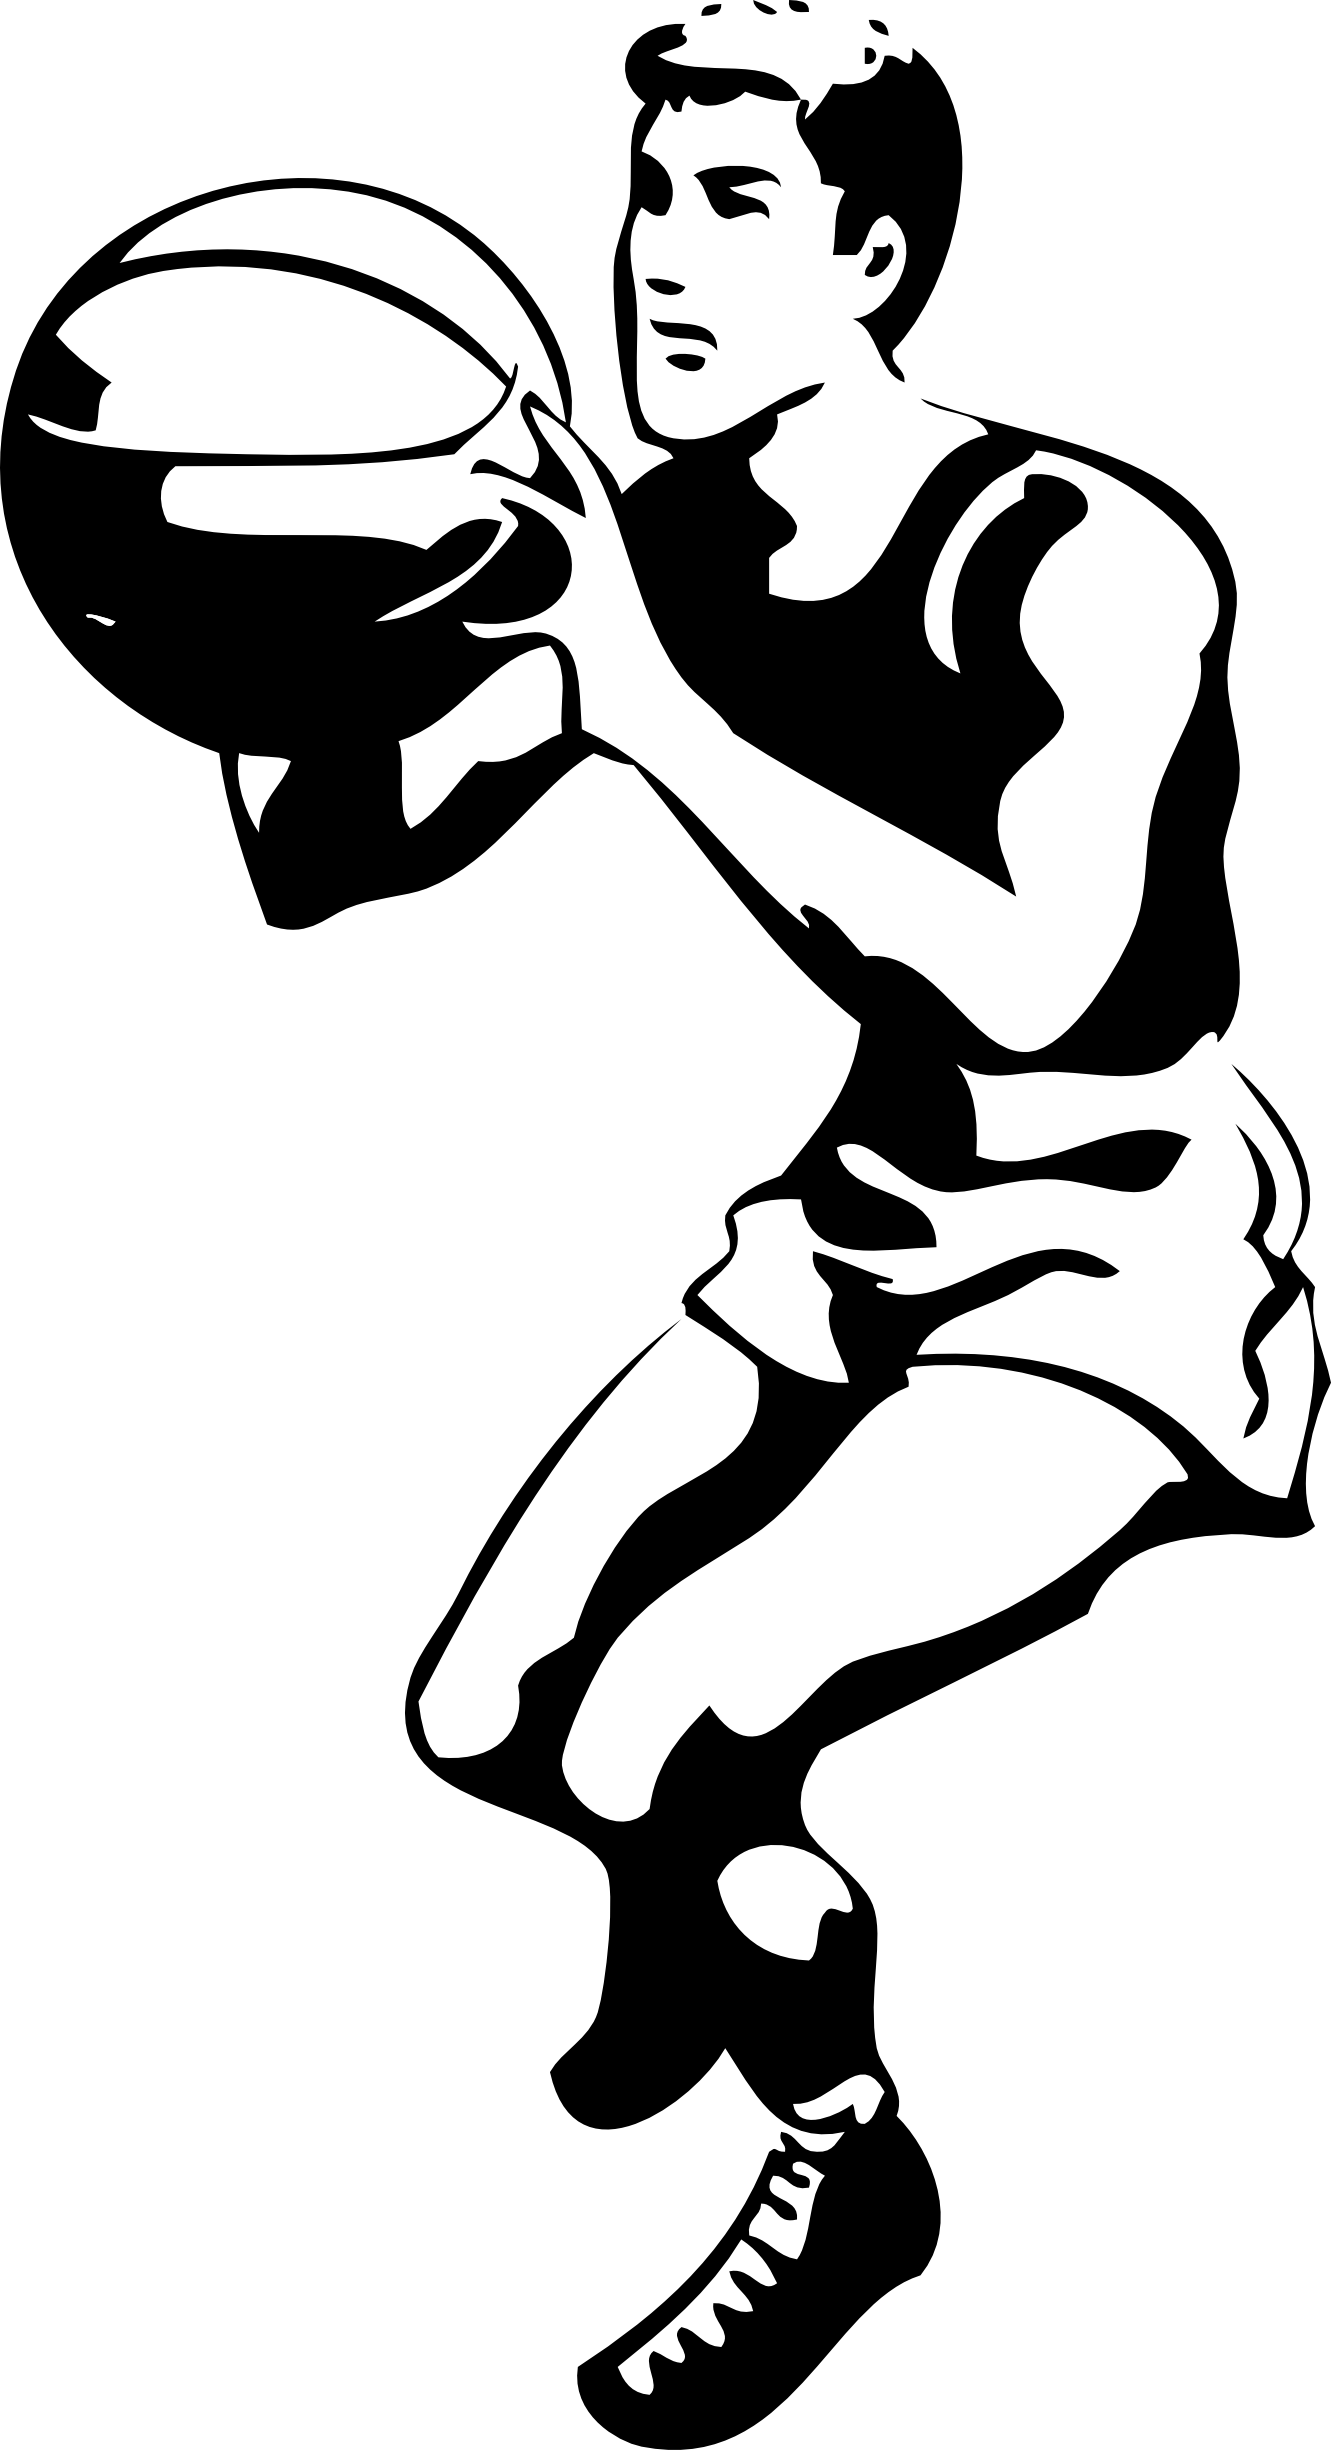 Heart shape basketball clipart black and white graphic royalty free download Basketball Player Clipart Black And White | Clipart Panda - Free ... graphic royalty free download